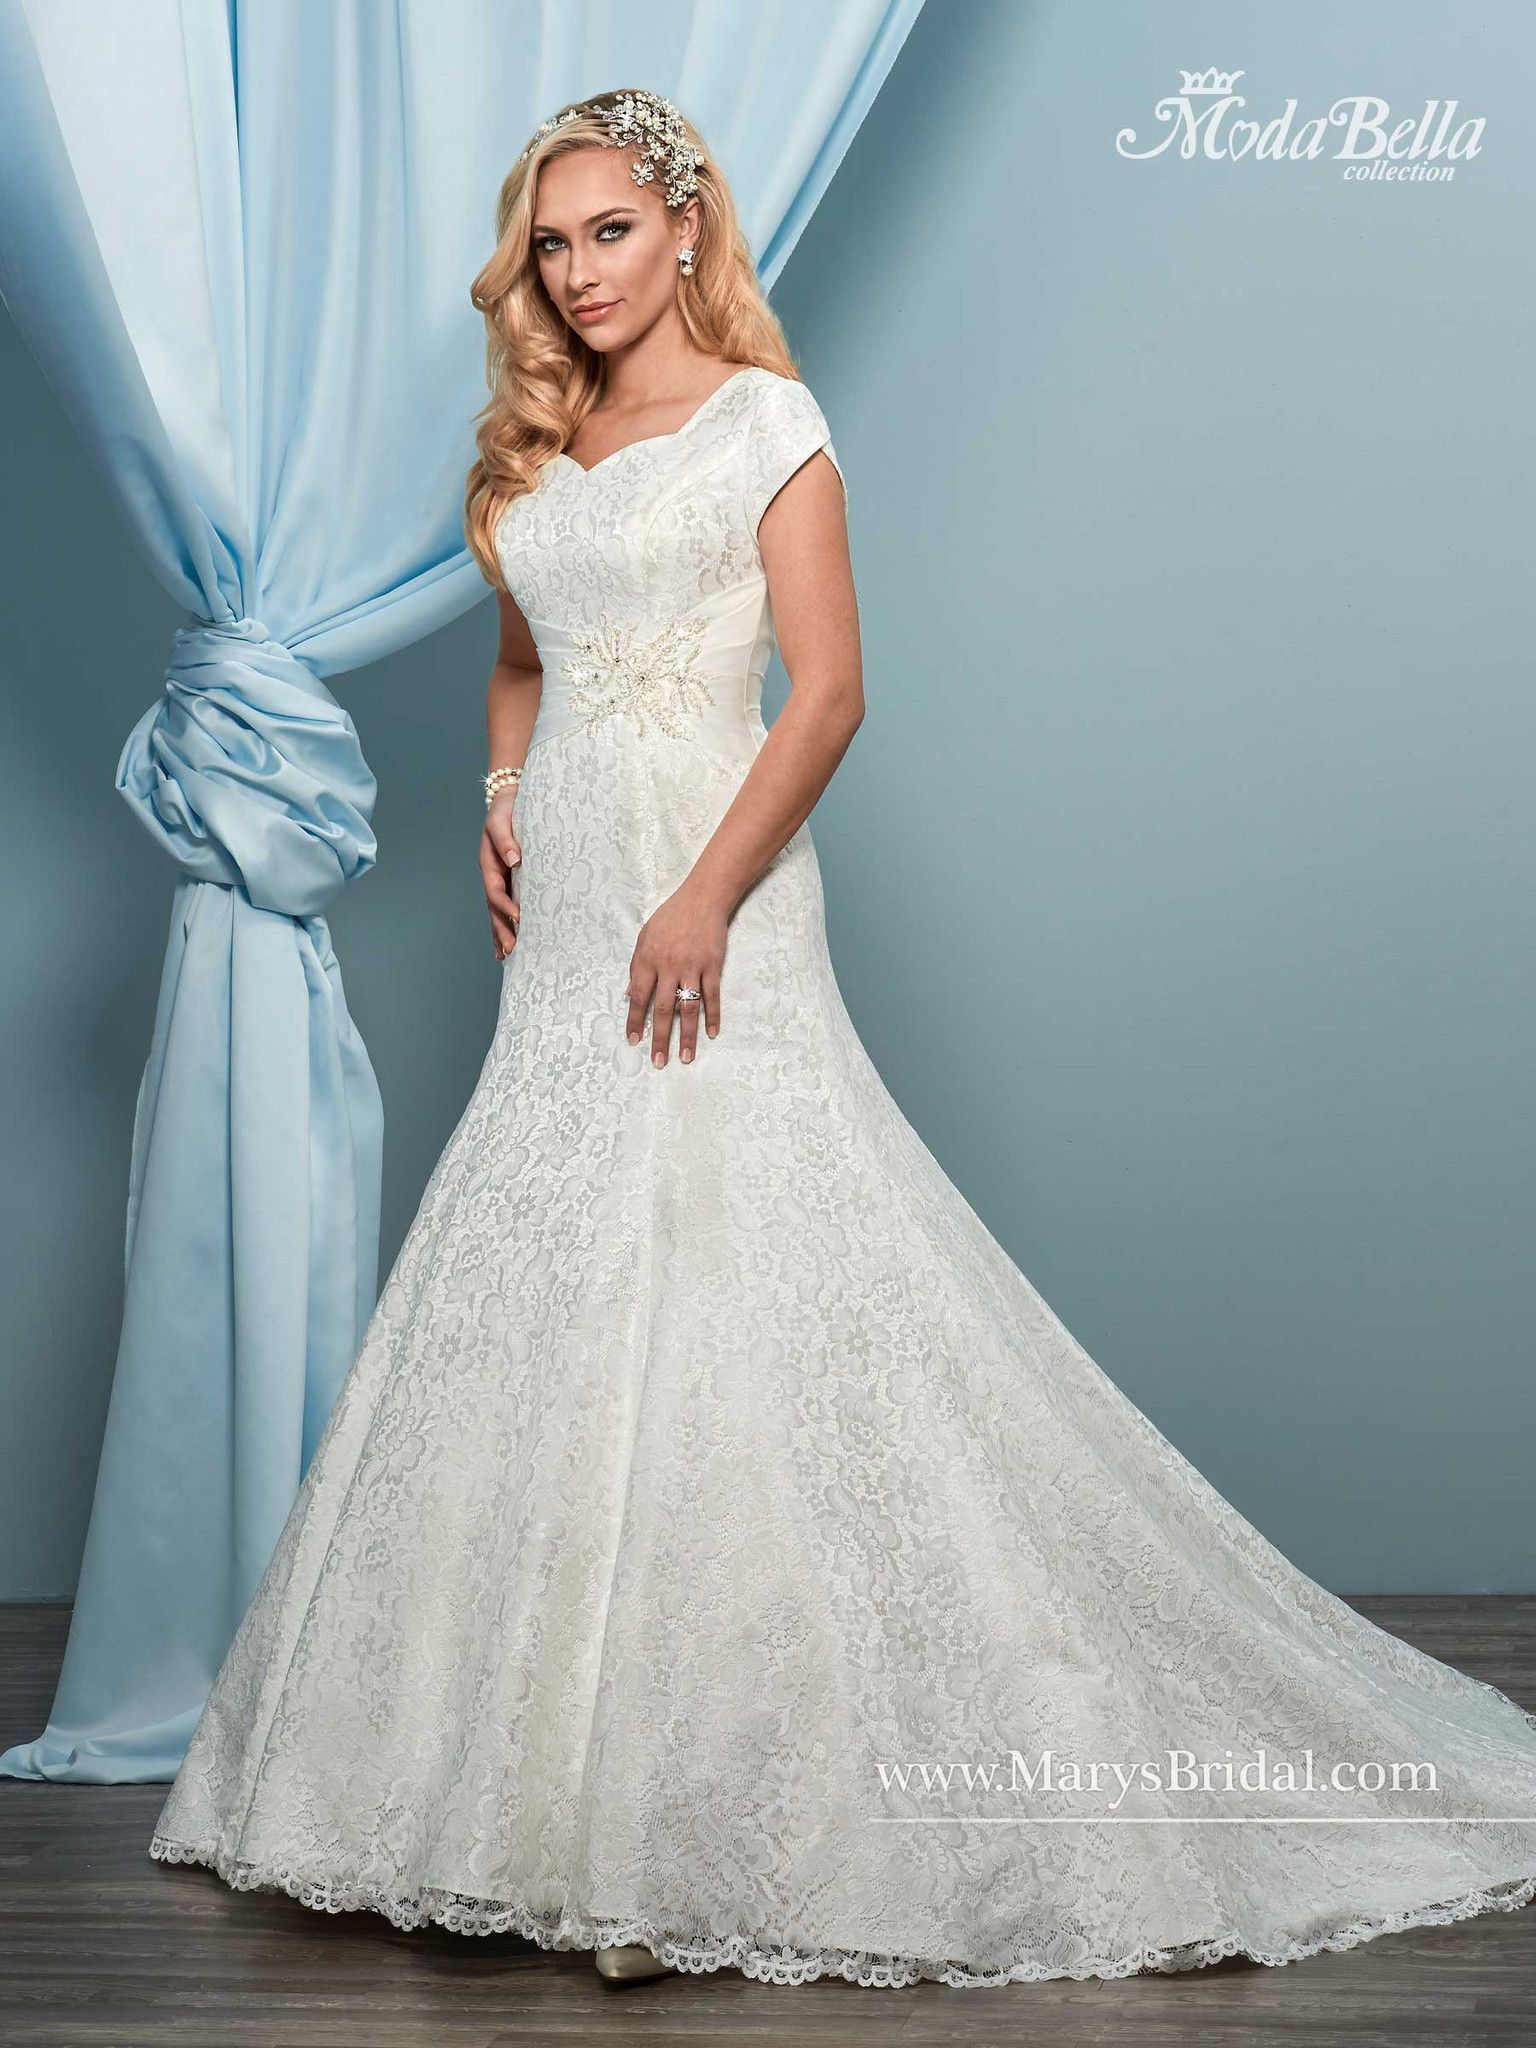 All-Over Lace Cap Sleeves Mermaid Gown | Products | Pinterest | Products